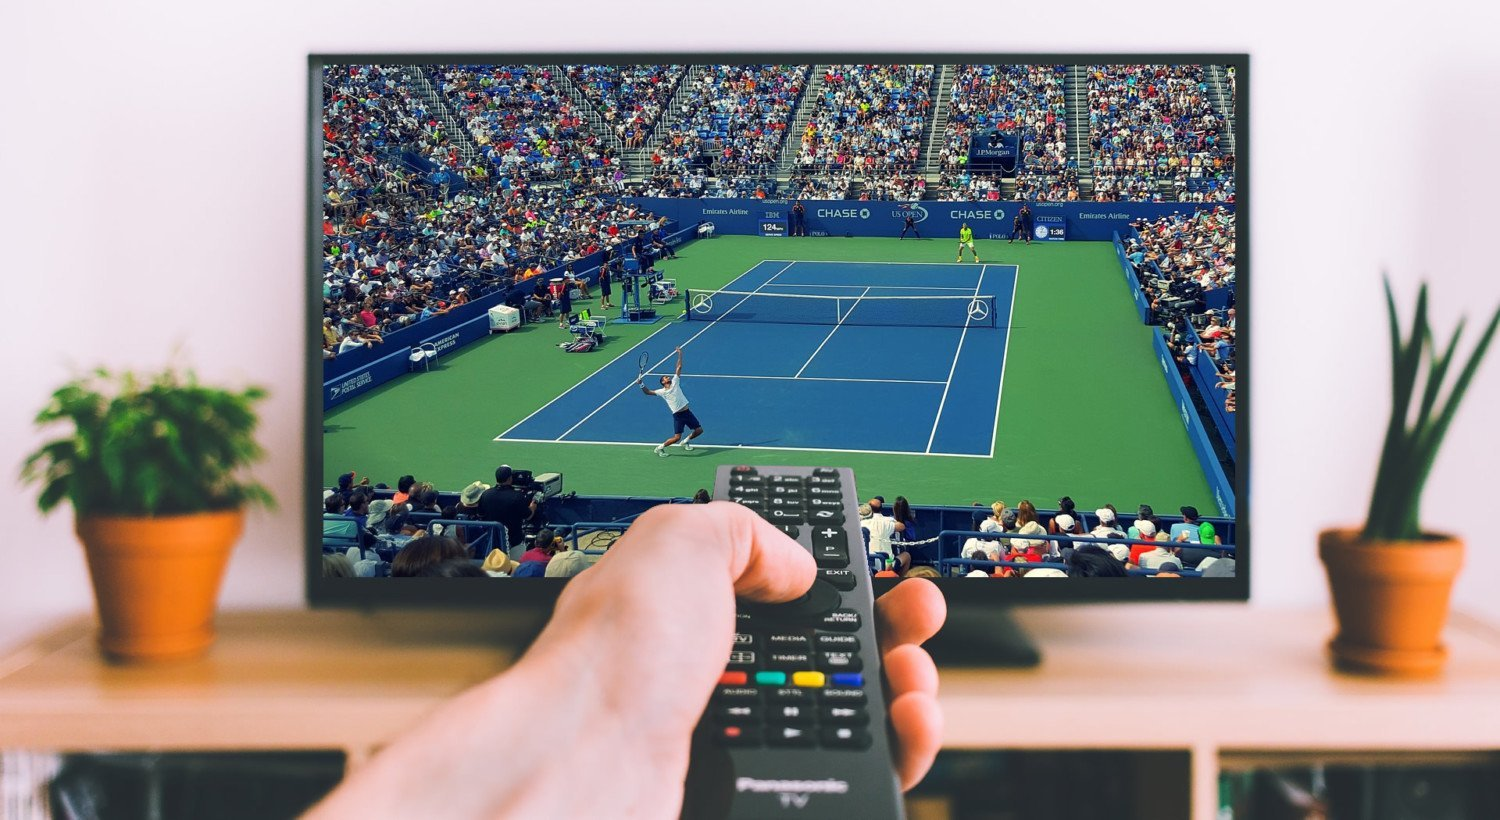 Tennis TV Streaming Guide